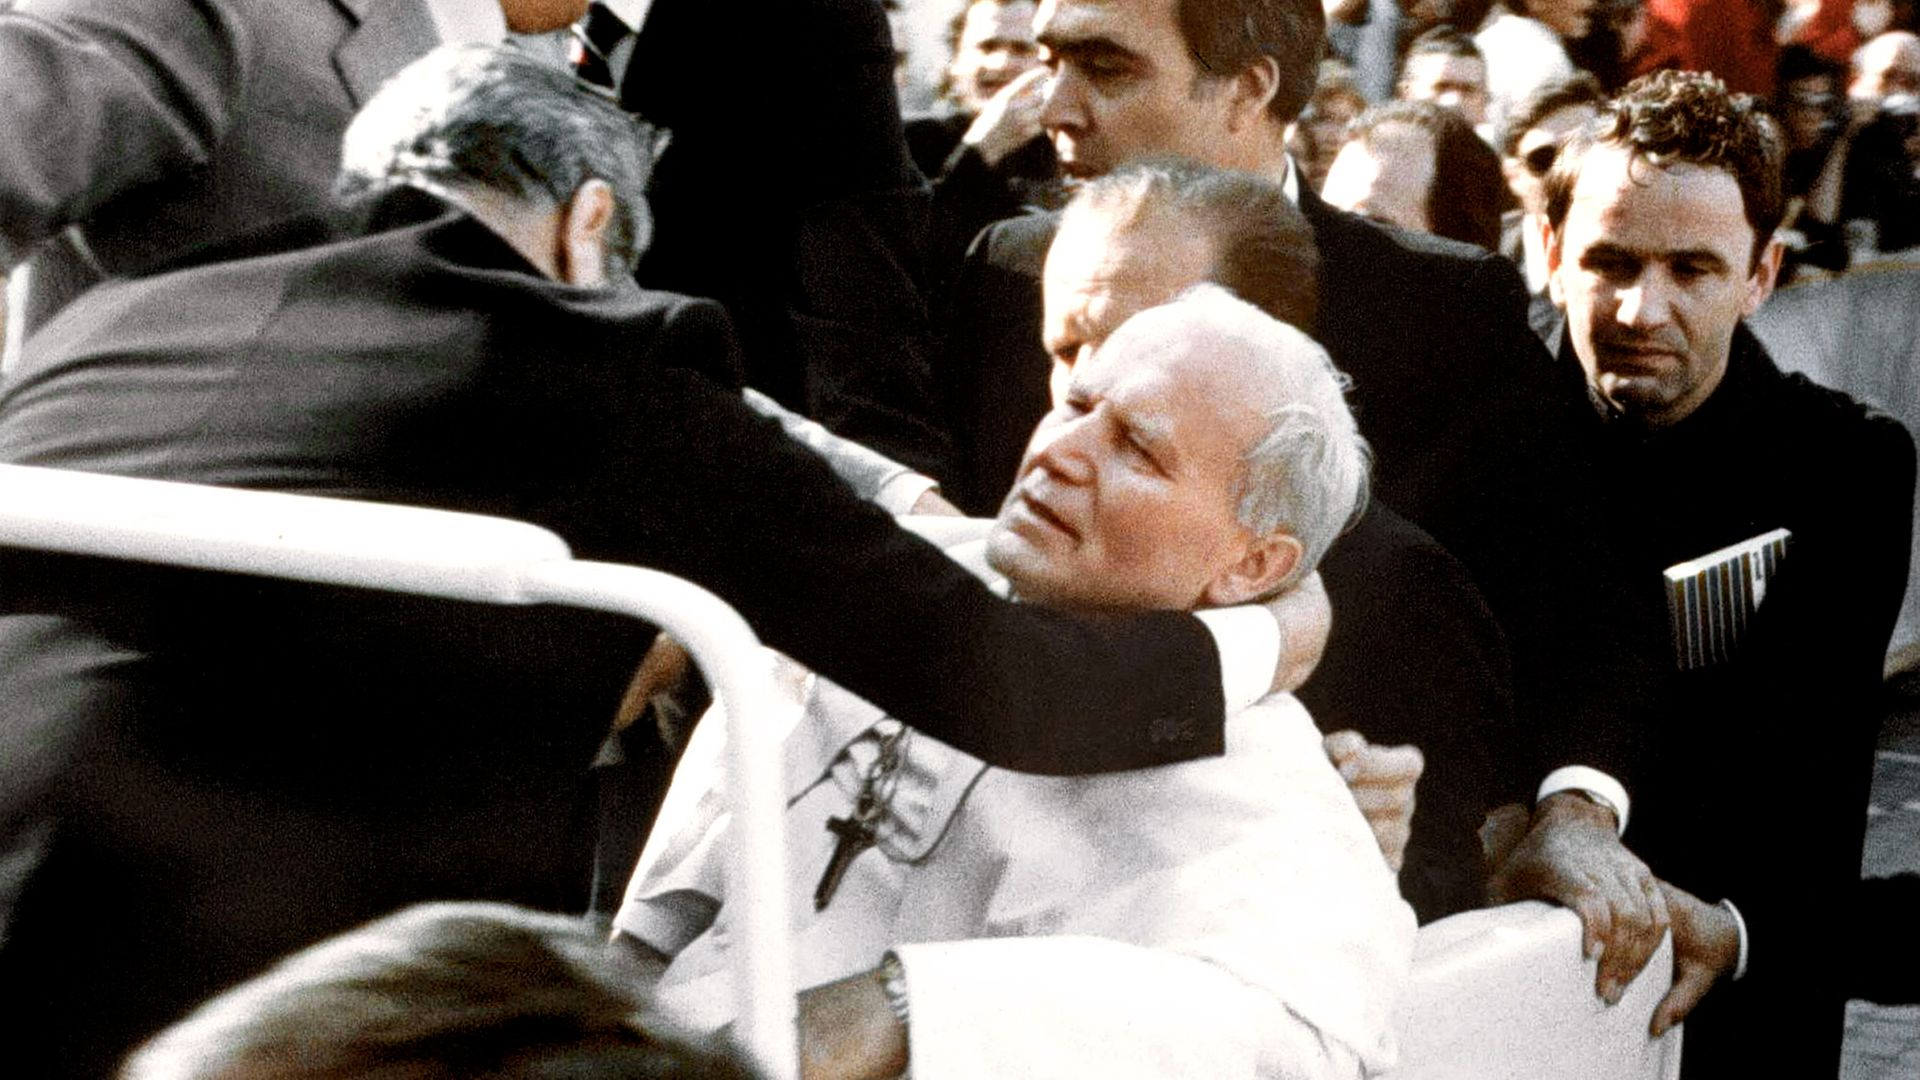 Bodyguards hold Pope John Paul II (C) after he was shot 13 May 1981 on Saint Peter's square by a Turkish extremist - Credit: AFP via Getty Images